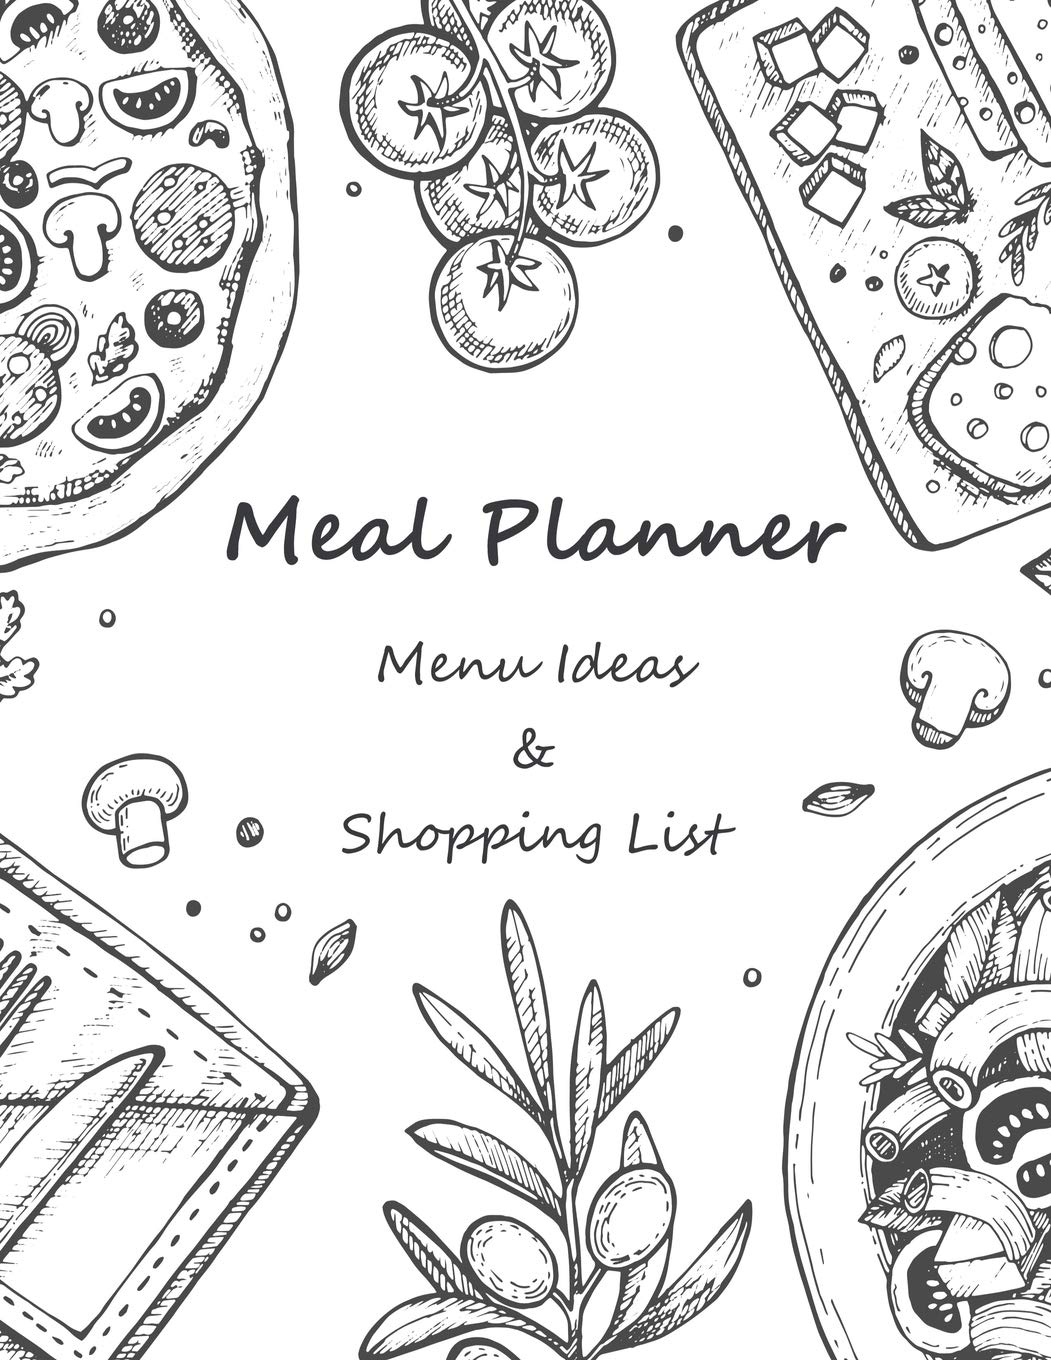 Meal Planner: Menu Ideas and Shopping Lists 53 Weeks For Track and Plan Your Meals Prep Foods Calendars Planning Logs What...